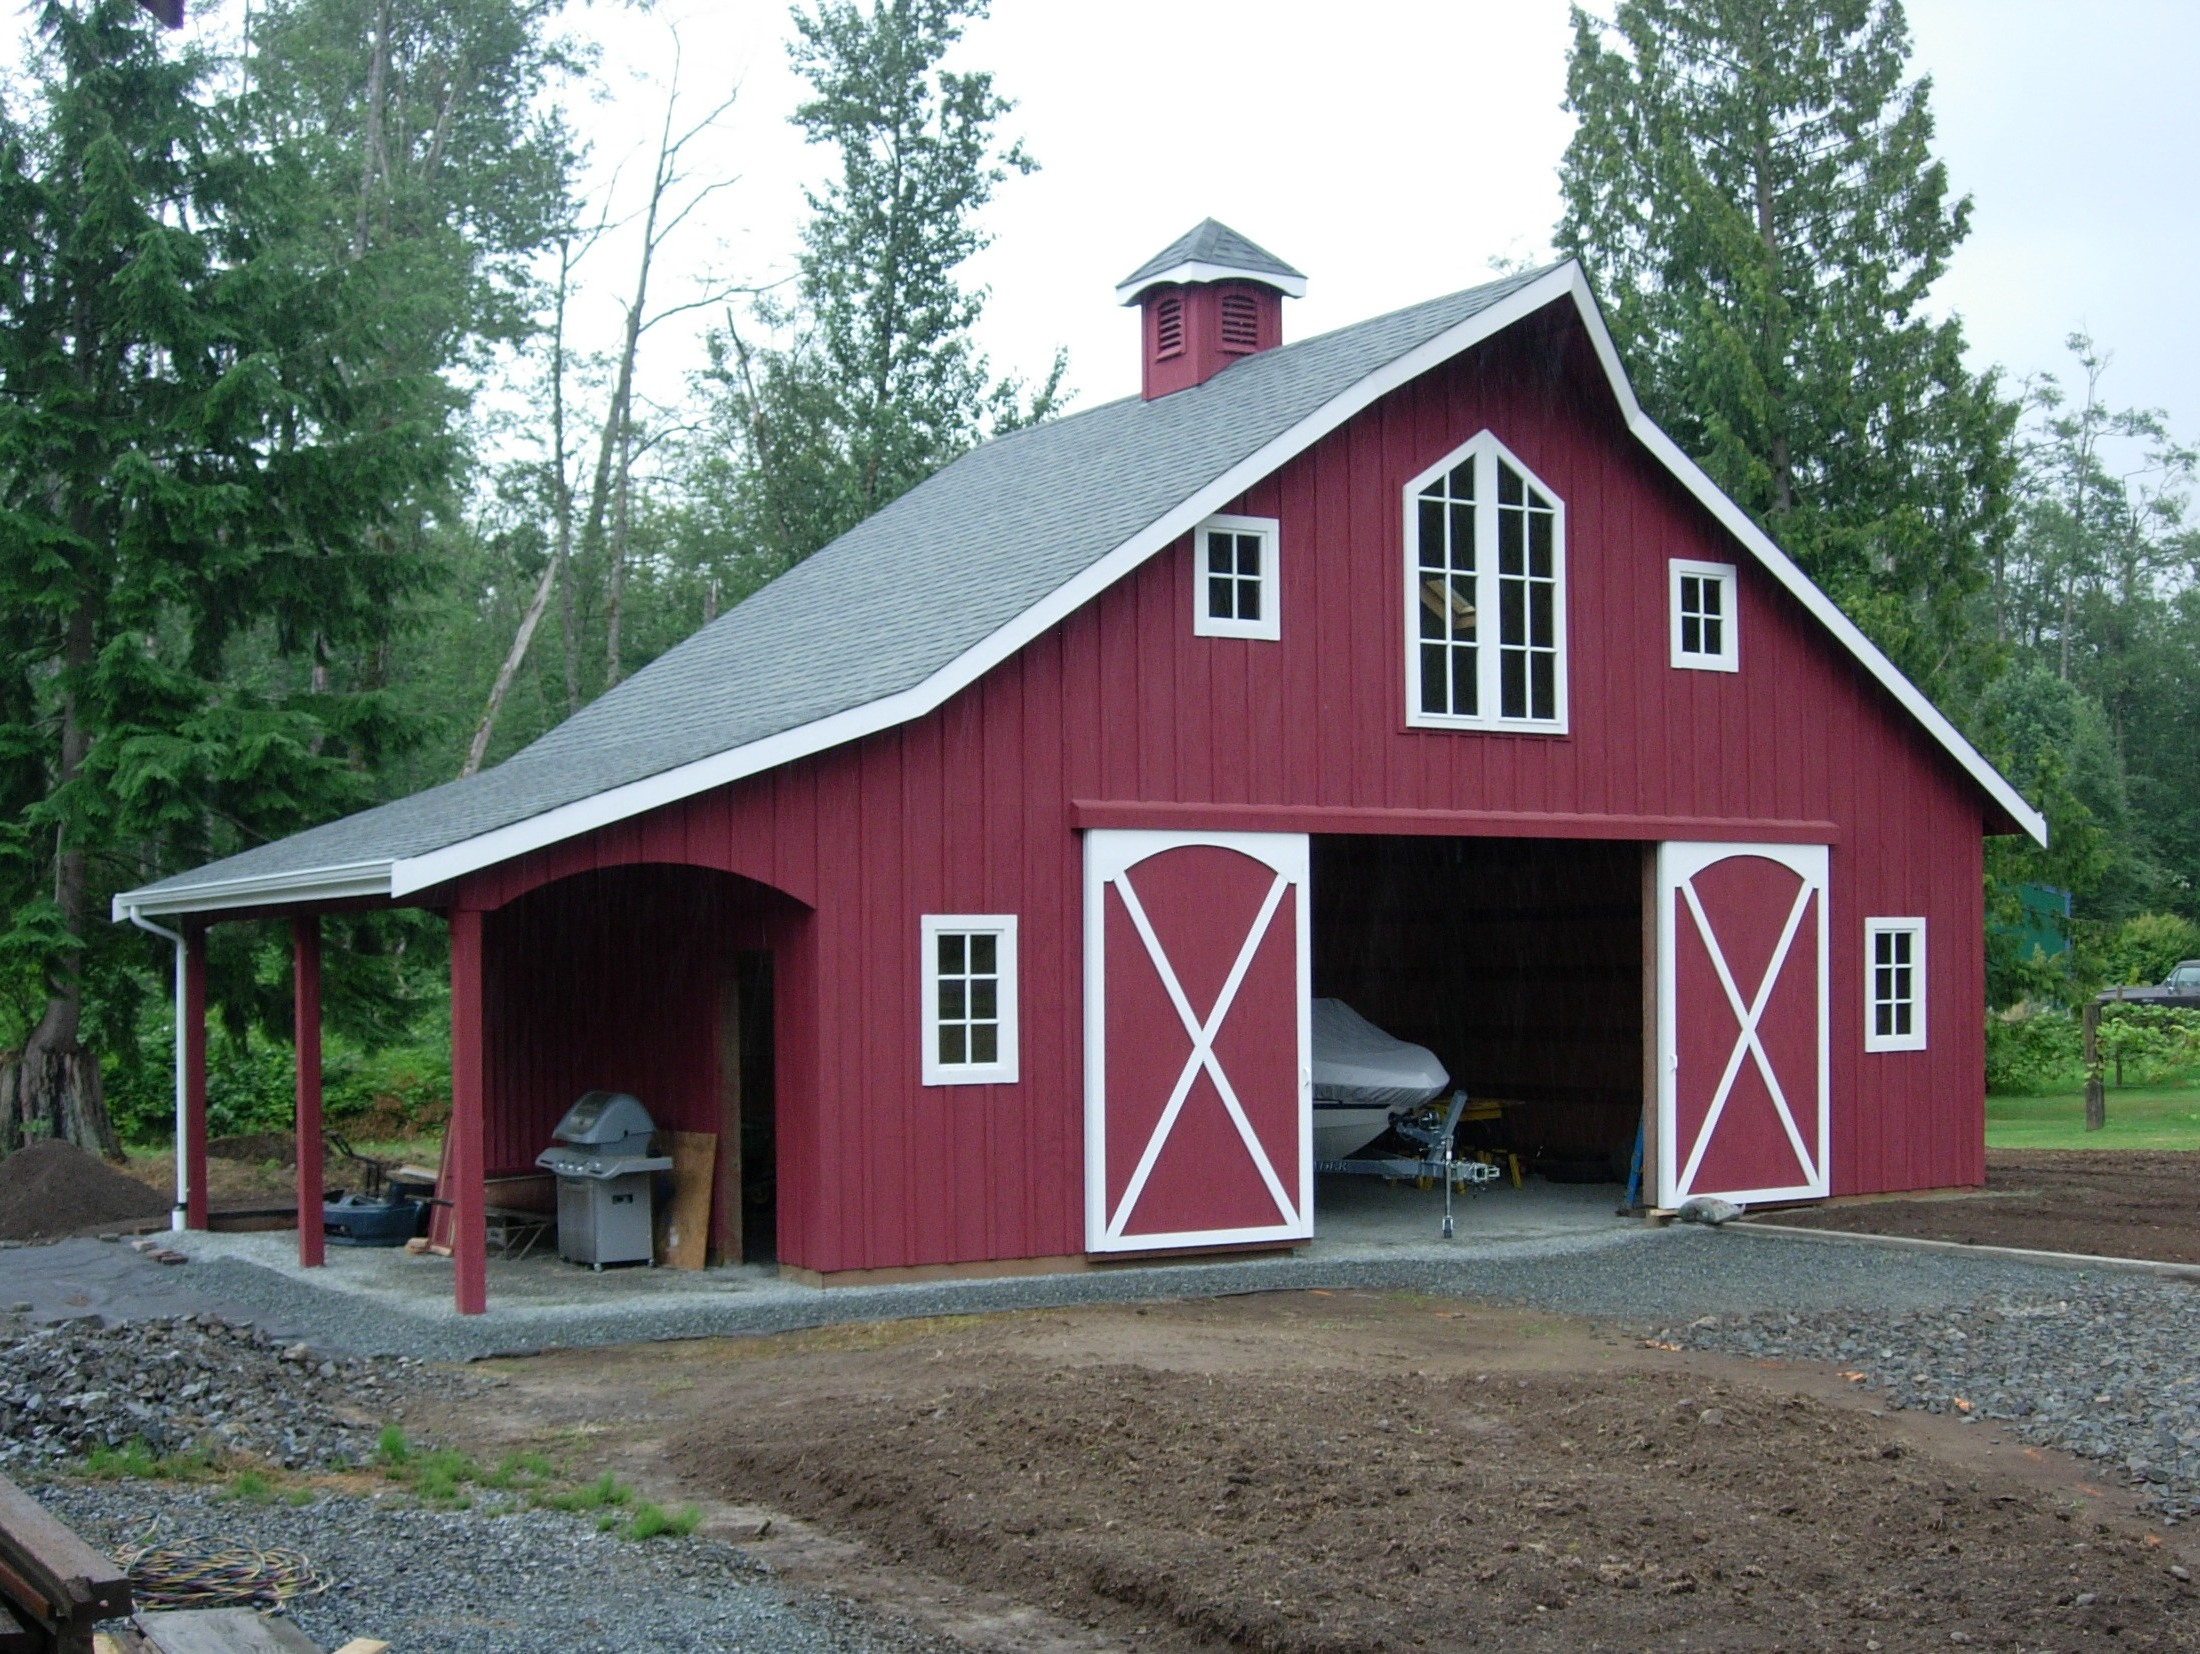 Home ideas building plans for small horse barn for Barn home design ideas